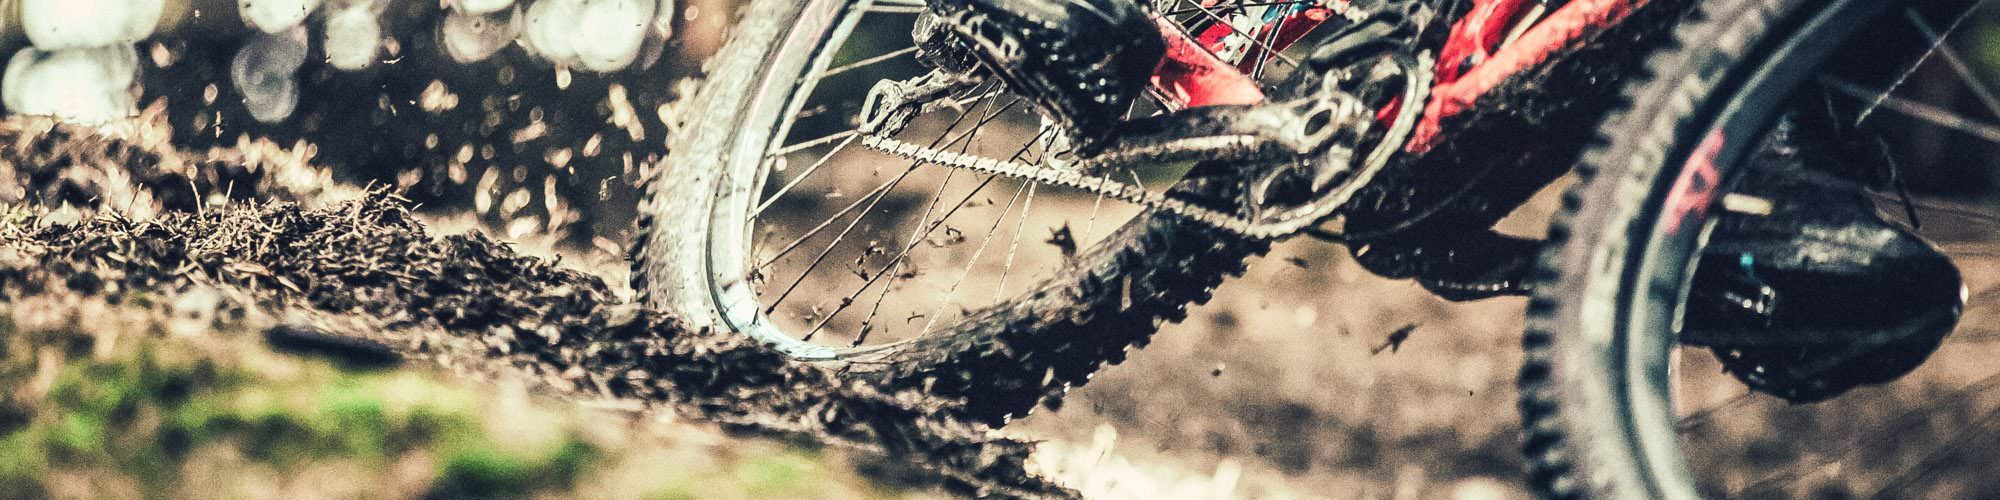 8cc96245e77 What tire pressure should I run in my MTB? | ENDURO Mountainbike ...